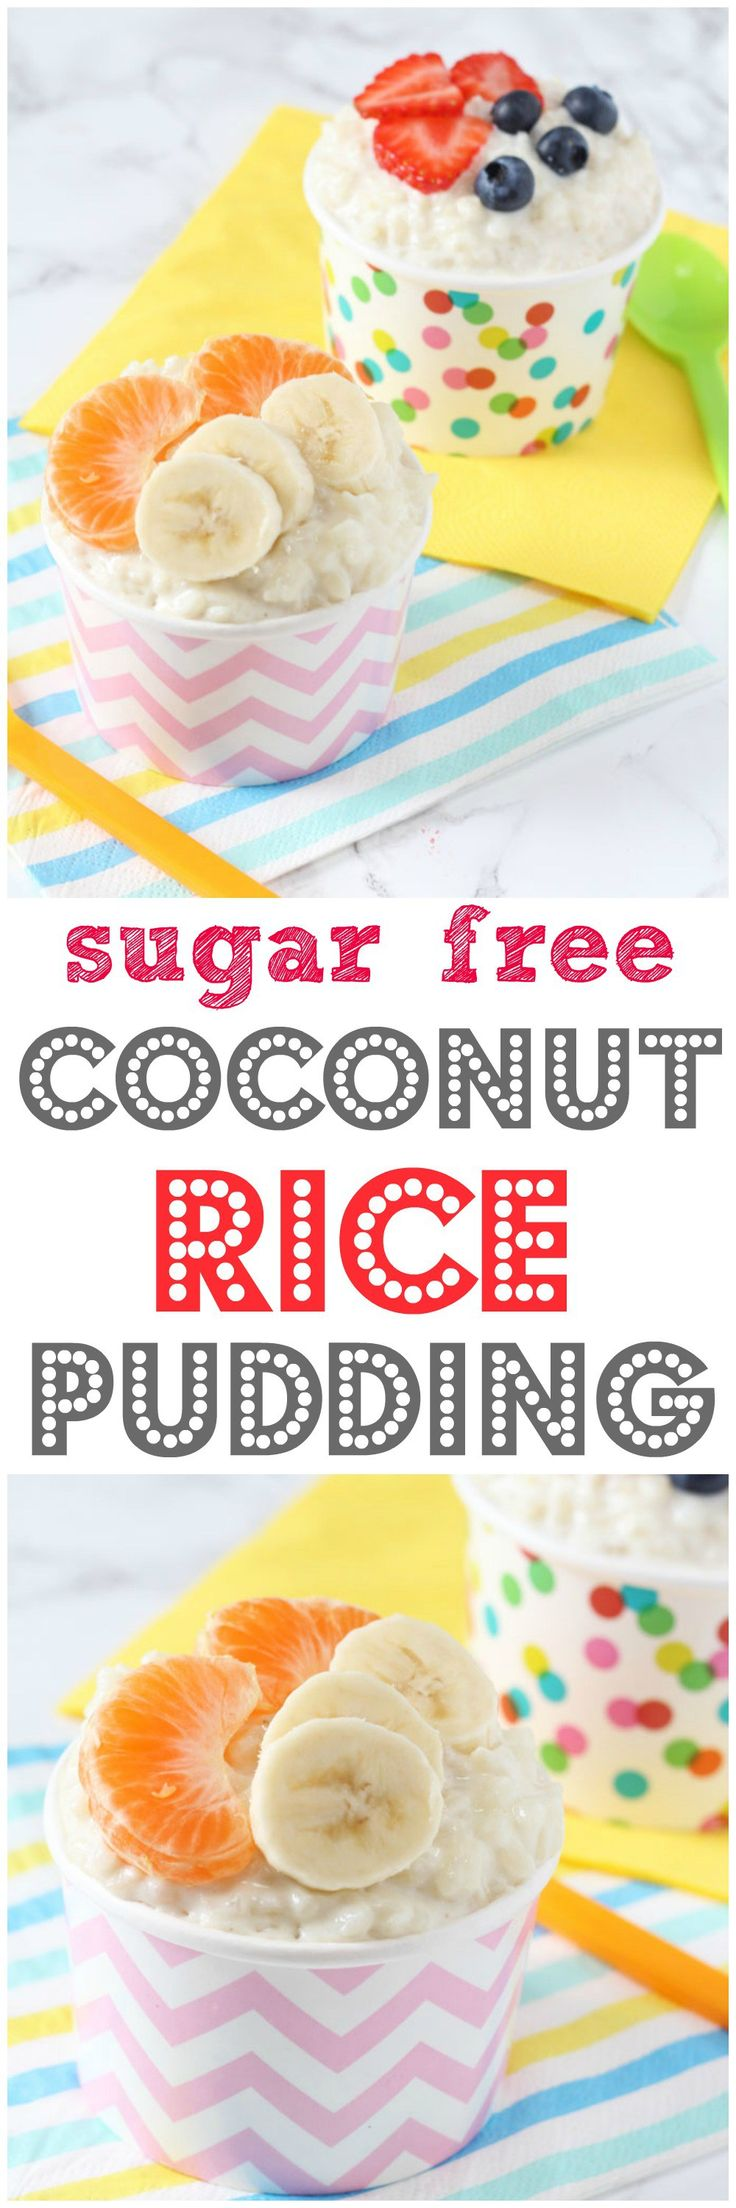 A delicious sugar free rice pudding recipe, naturally sweetened with coconut and great for weaning babies and children